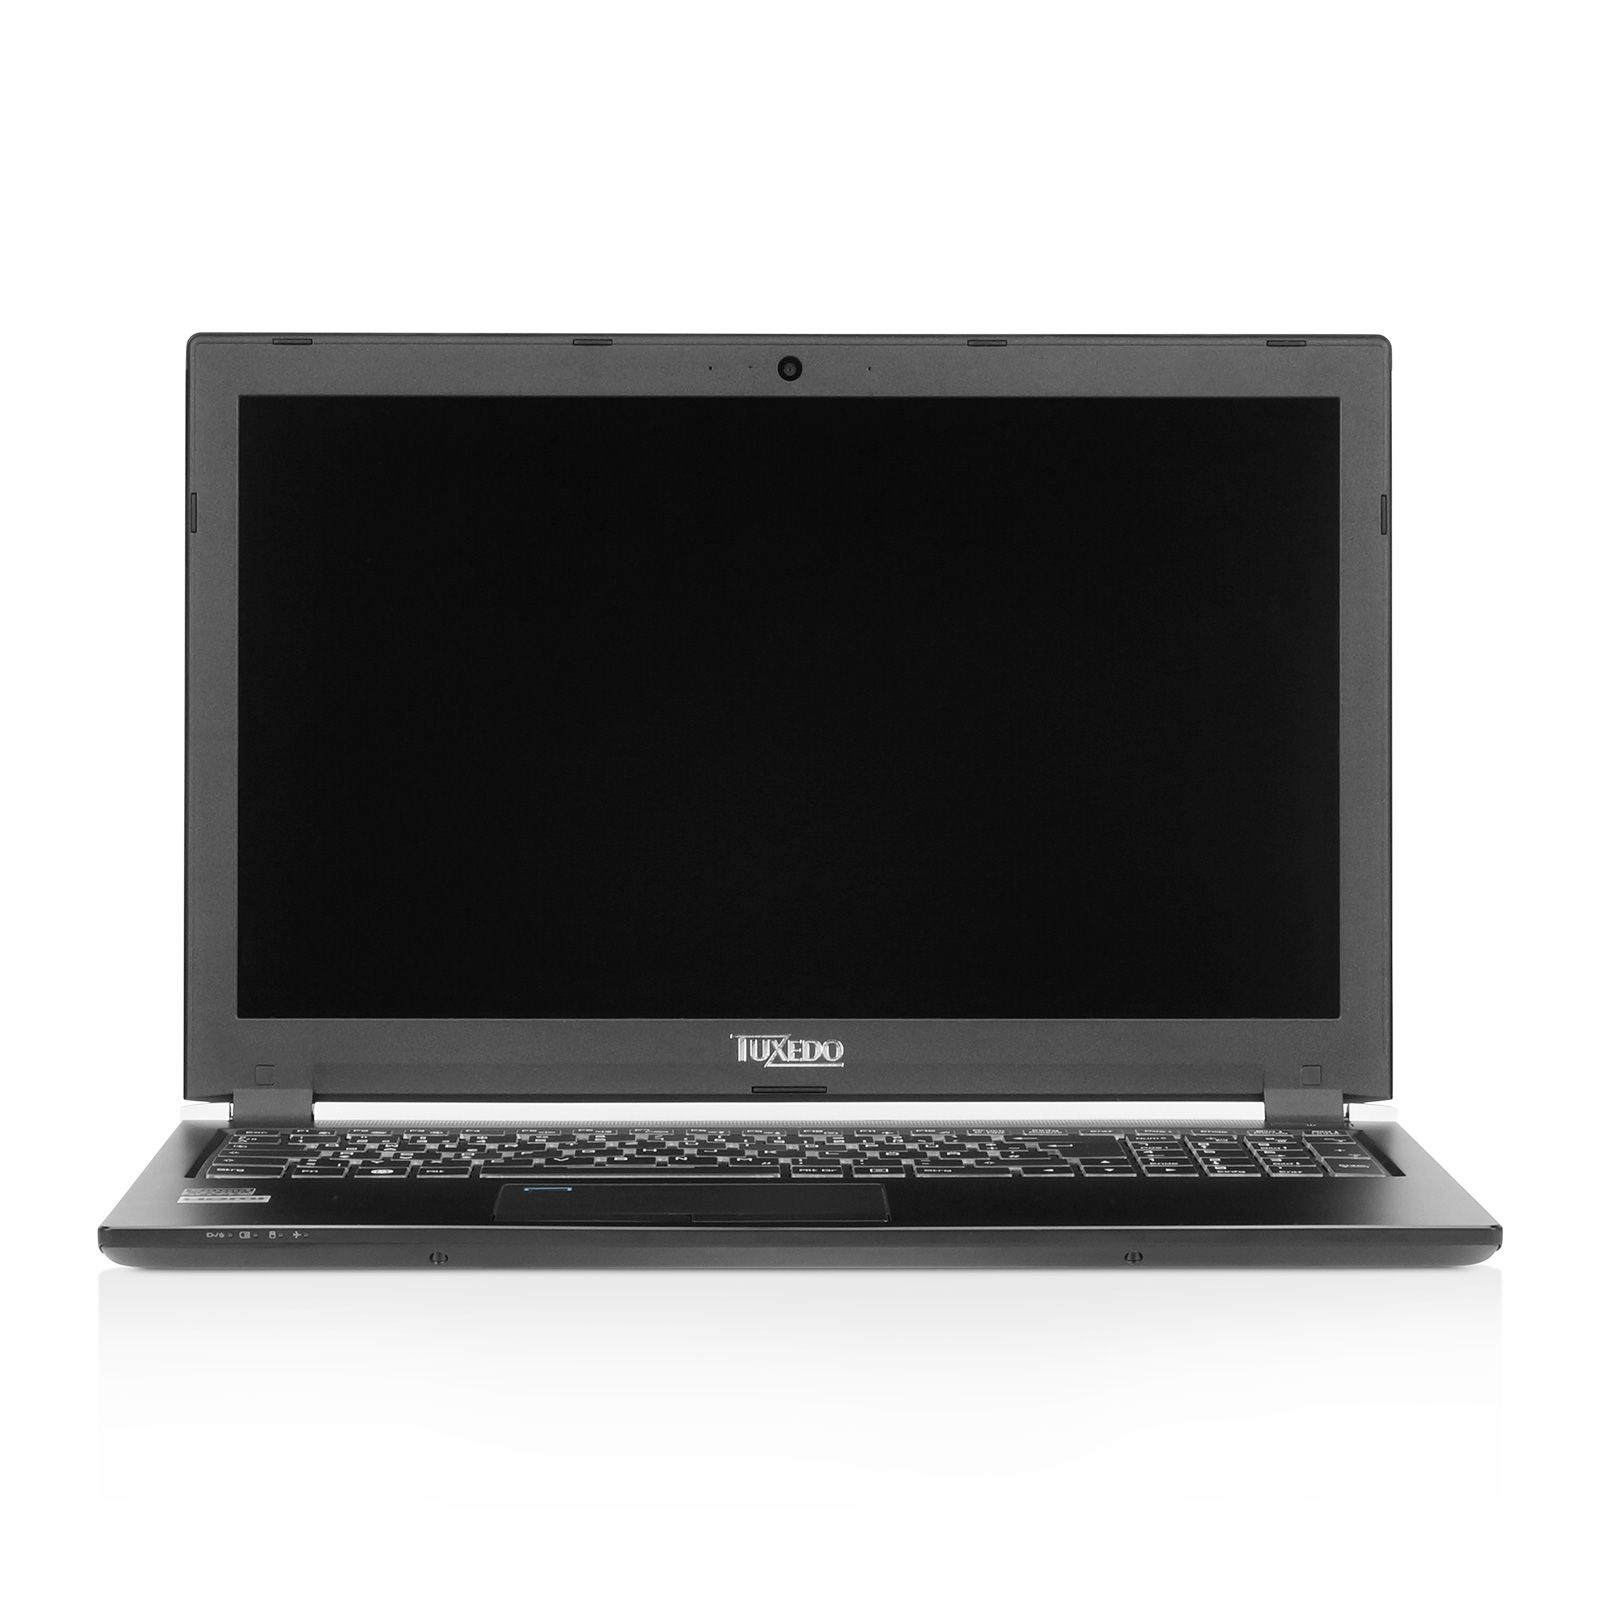 "TUXEDO Book XP1508 - 15,6"" non-glare Full-HD IPS + Ultra Slim + up to NVIDIA GeForce GTX 1070 + up to two HDD o. SSD + Intel Core i7 Six-Core + up to 64RAM + LTE opt."